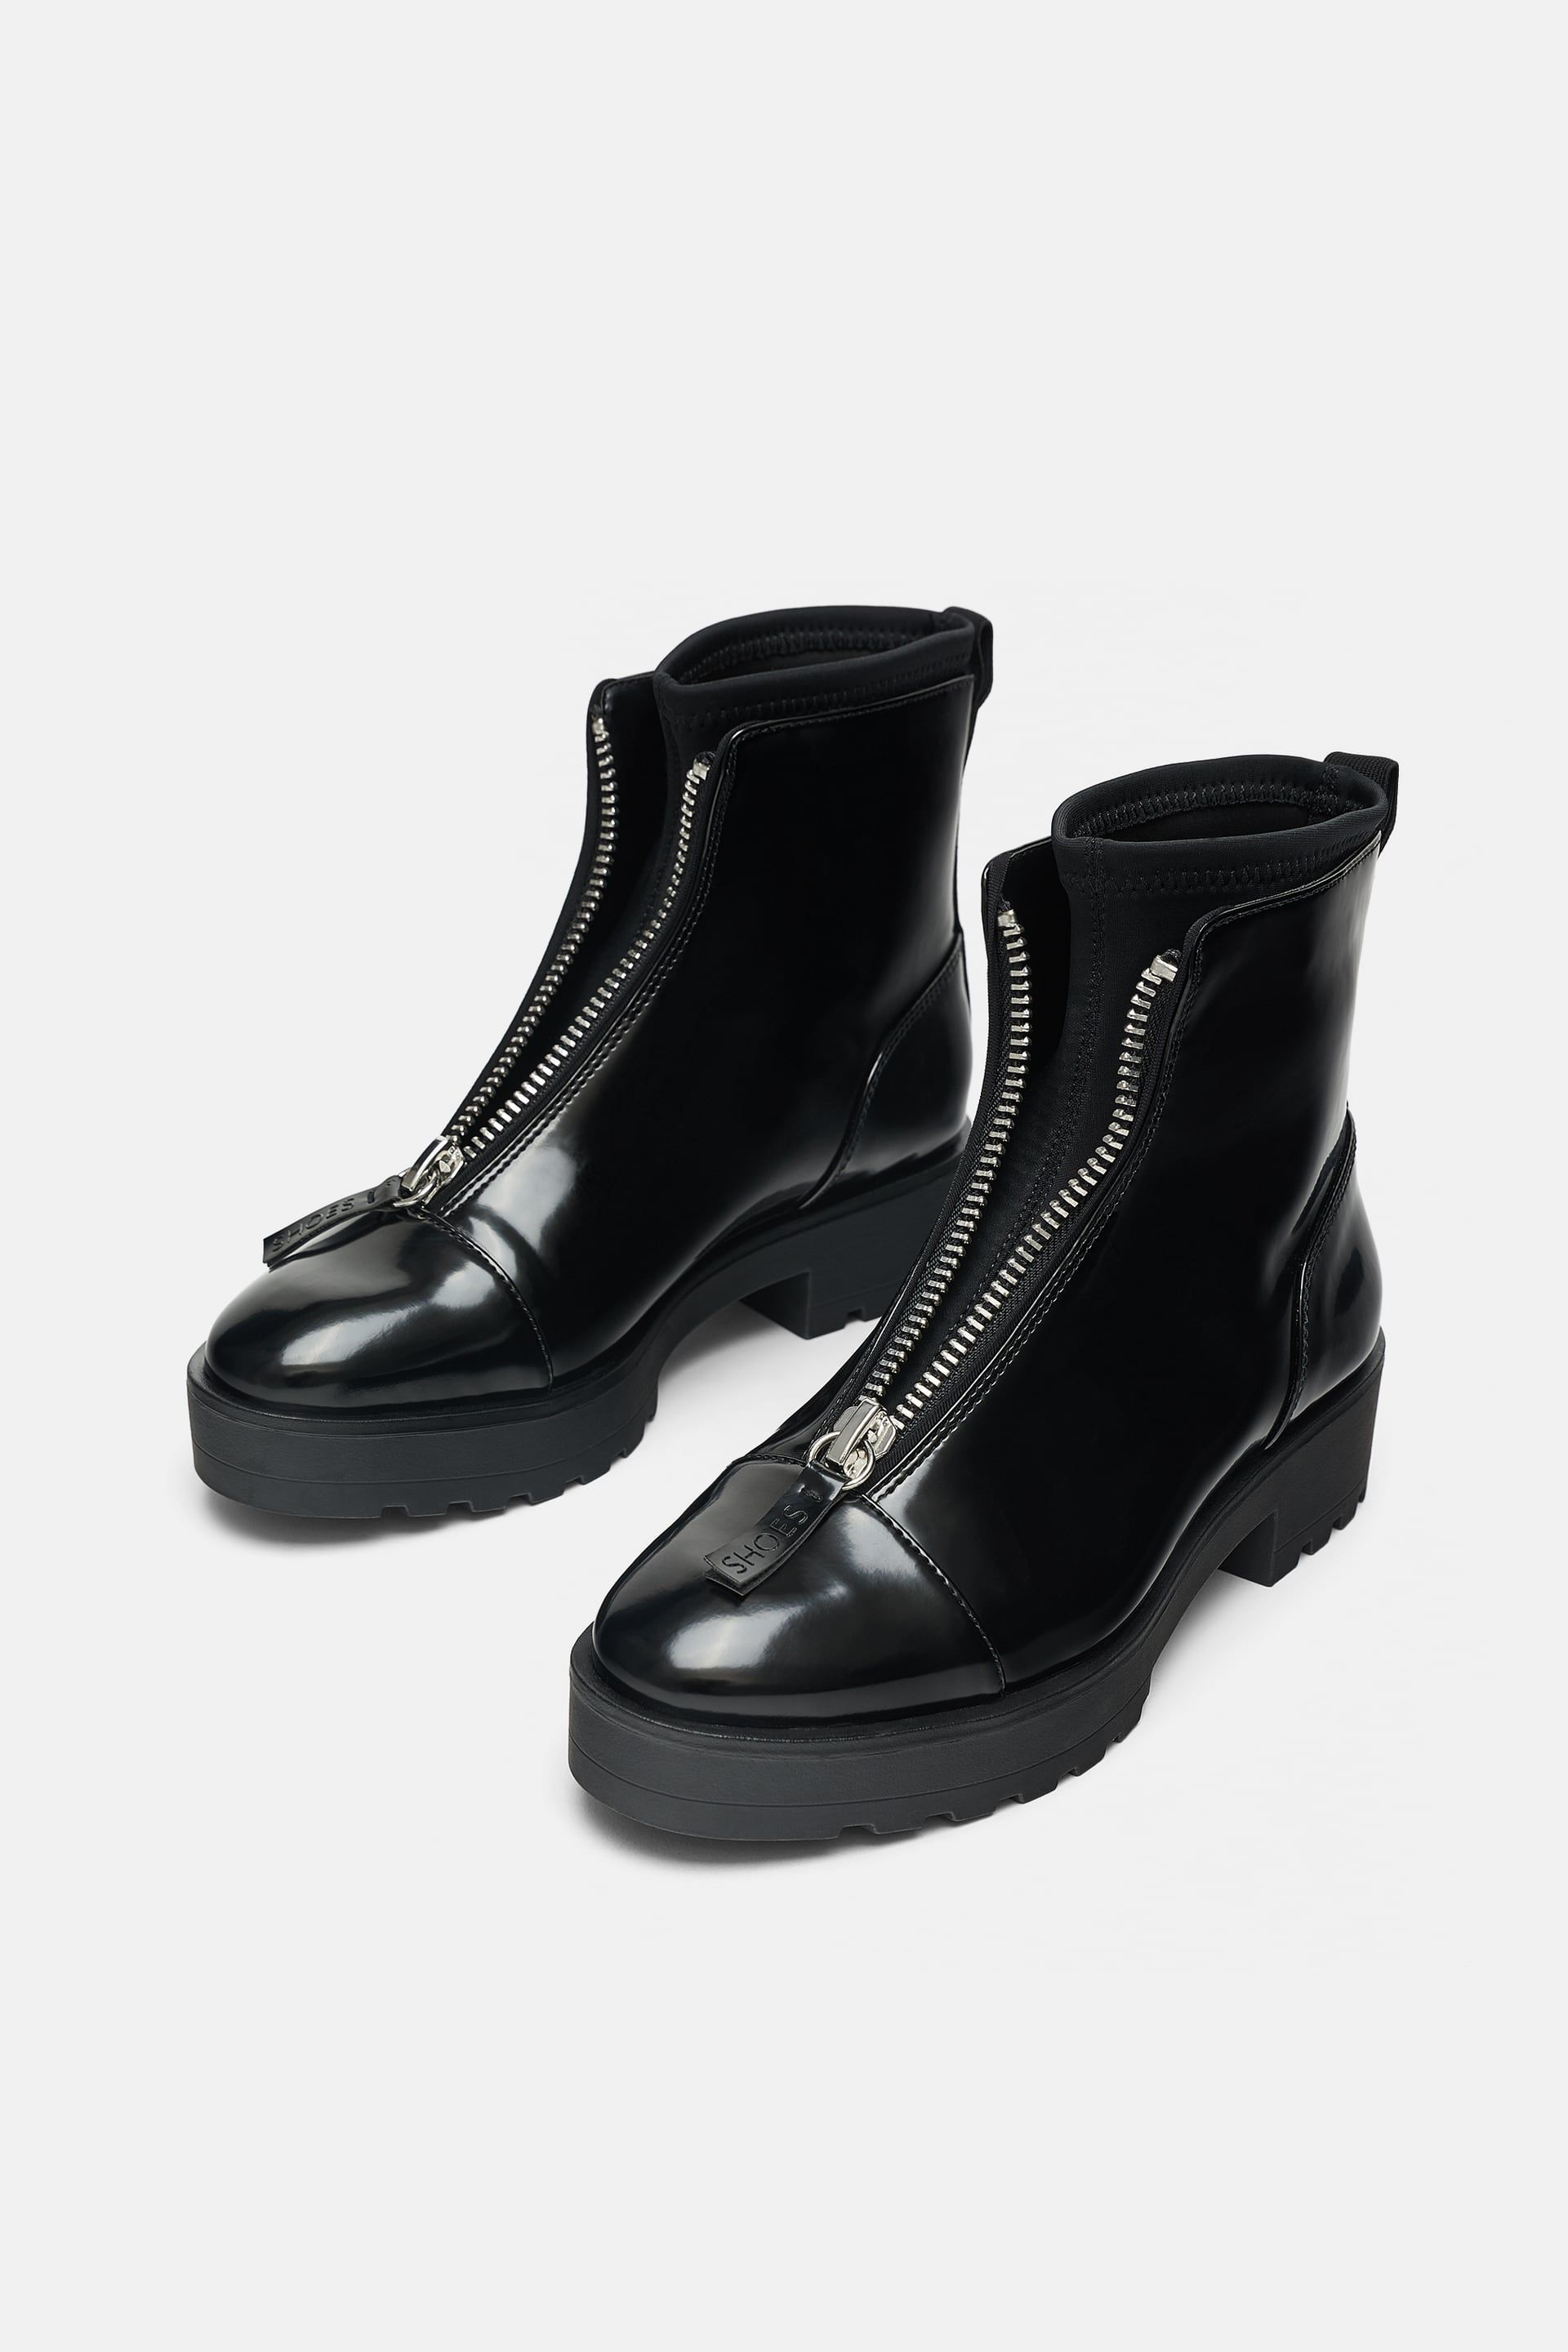 5116478d845 Ankle boots with lug soles in 2019 | clothing | Shoes, Boots, Bootie ...